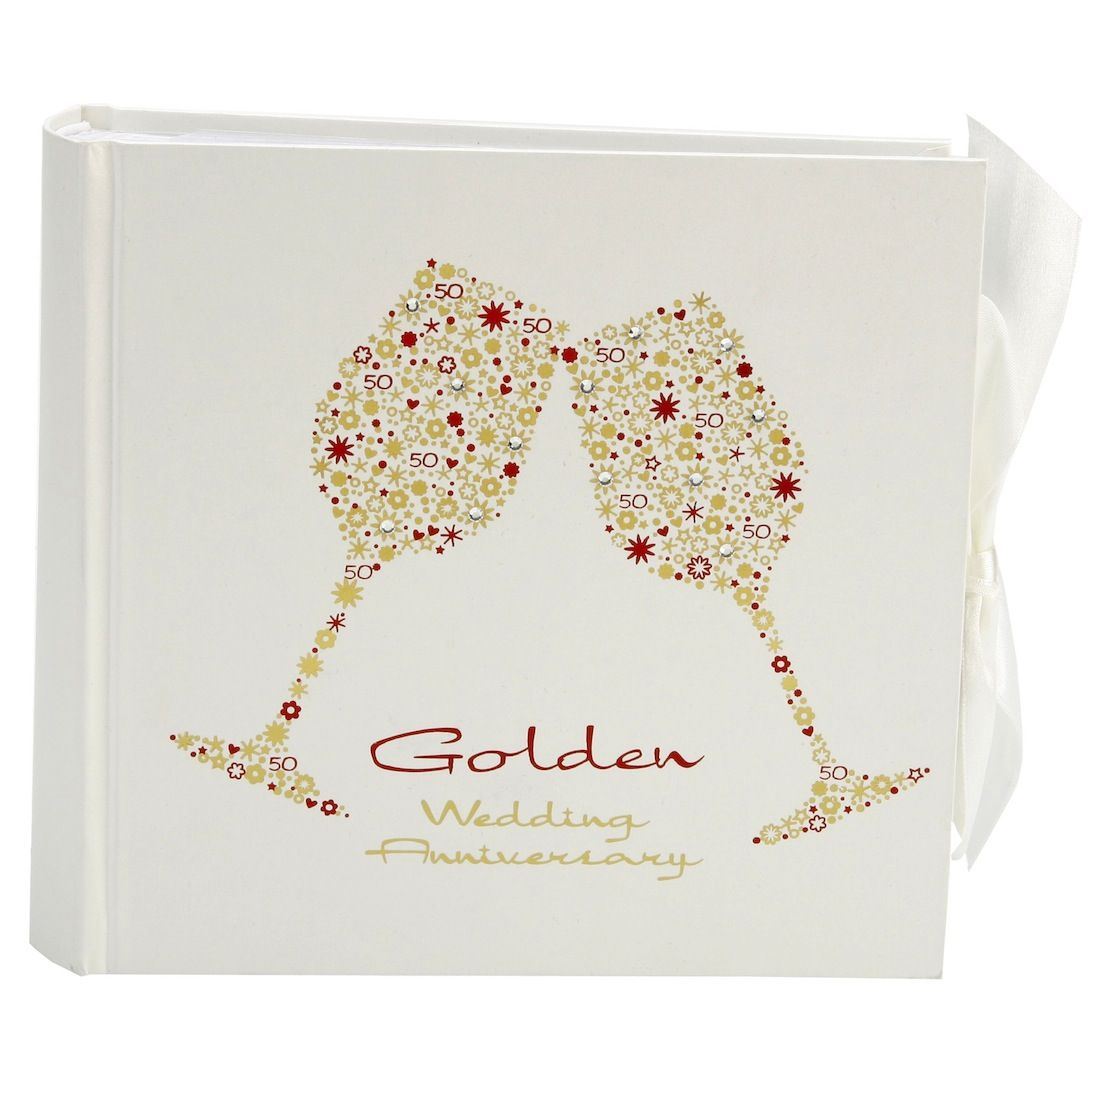 50th wedding anniversary poems 50th golden wedding anniversary photo album anniversary gifts